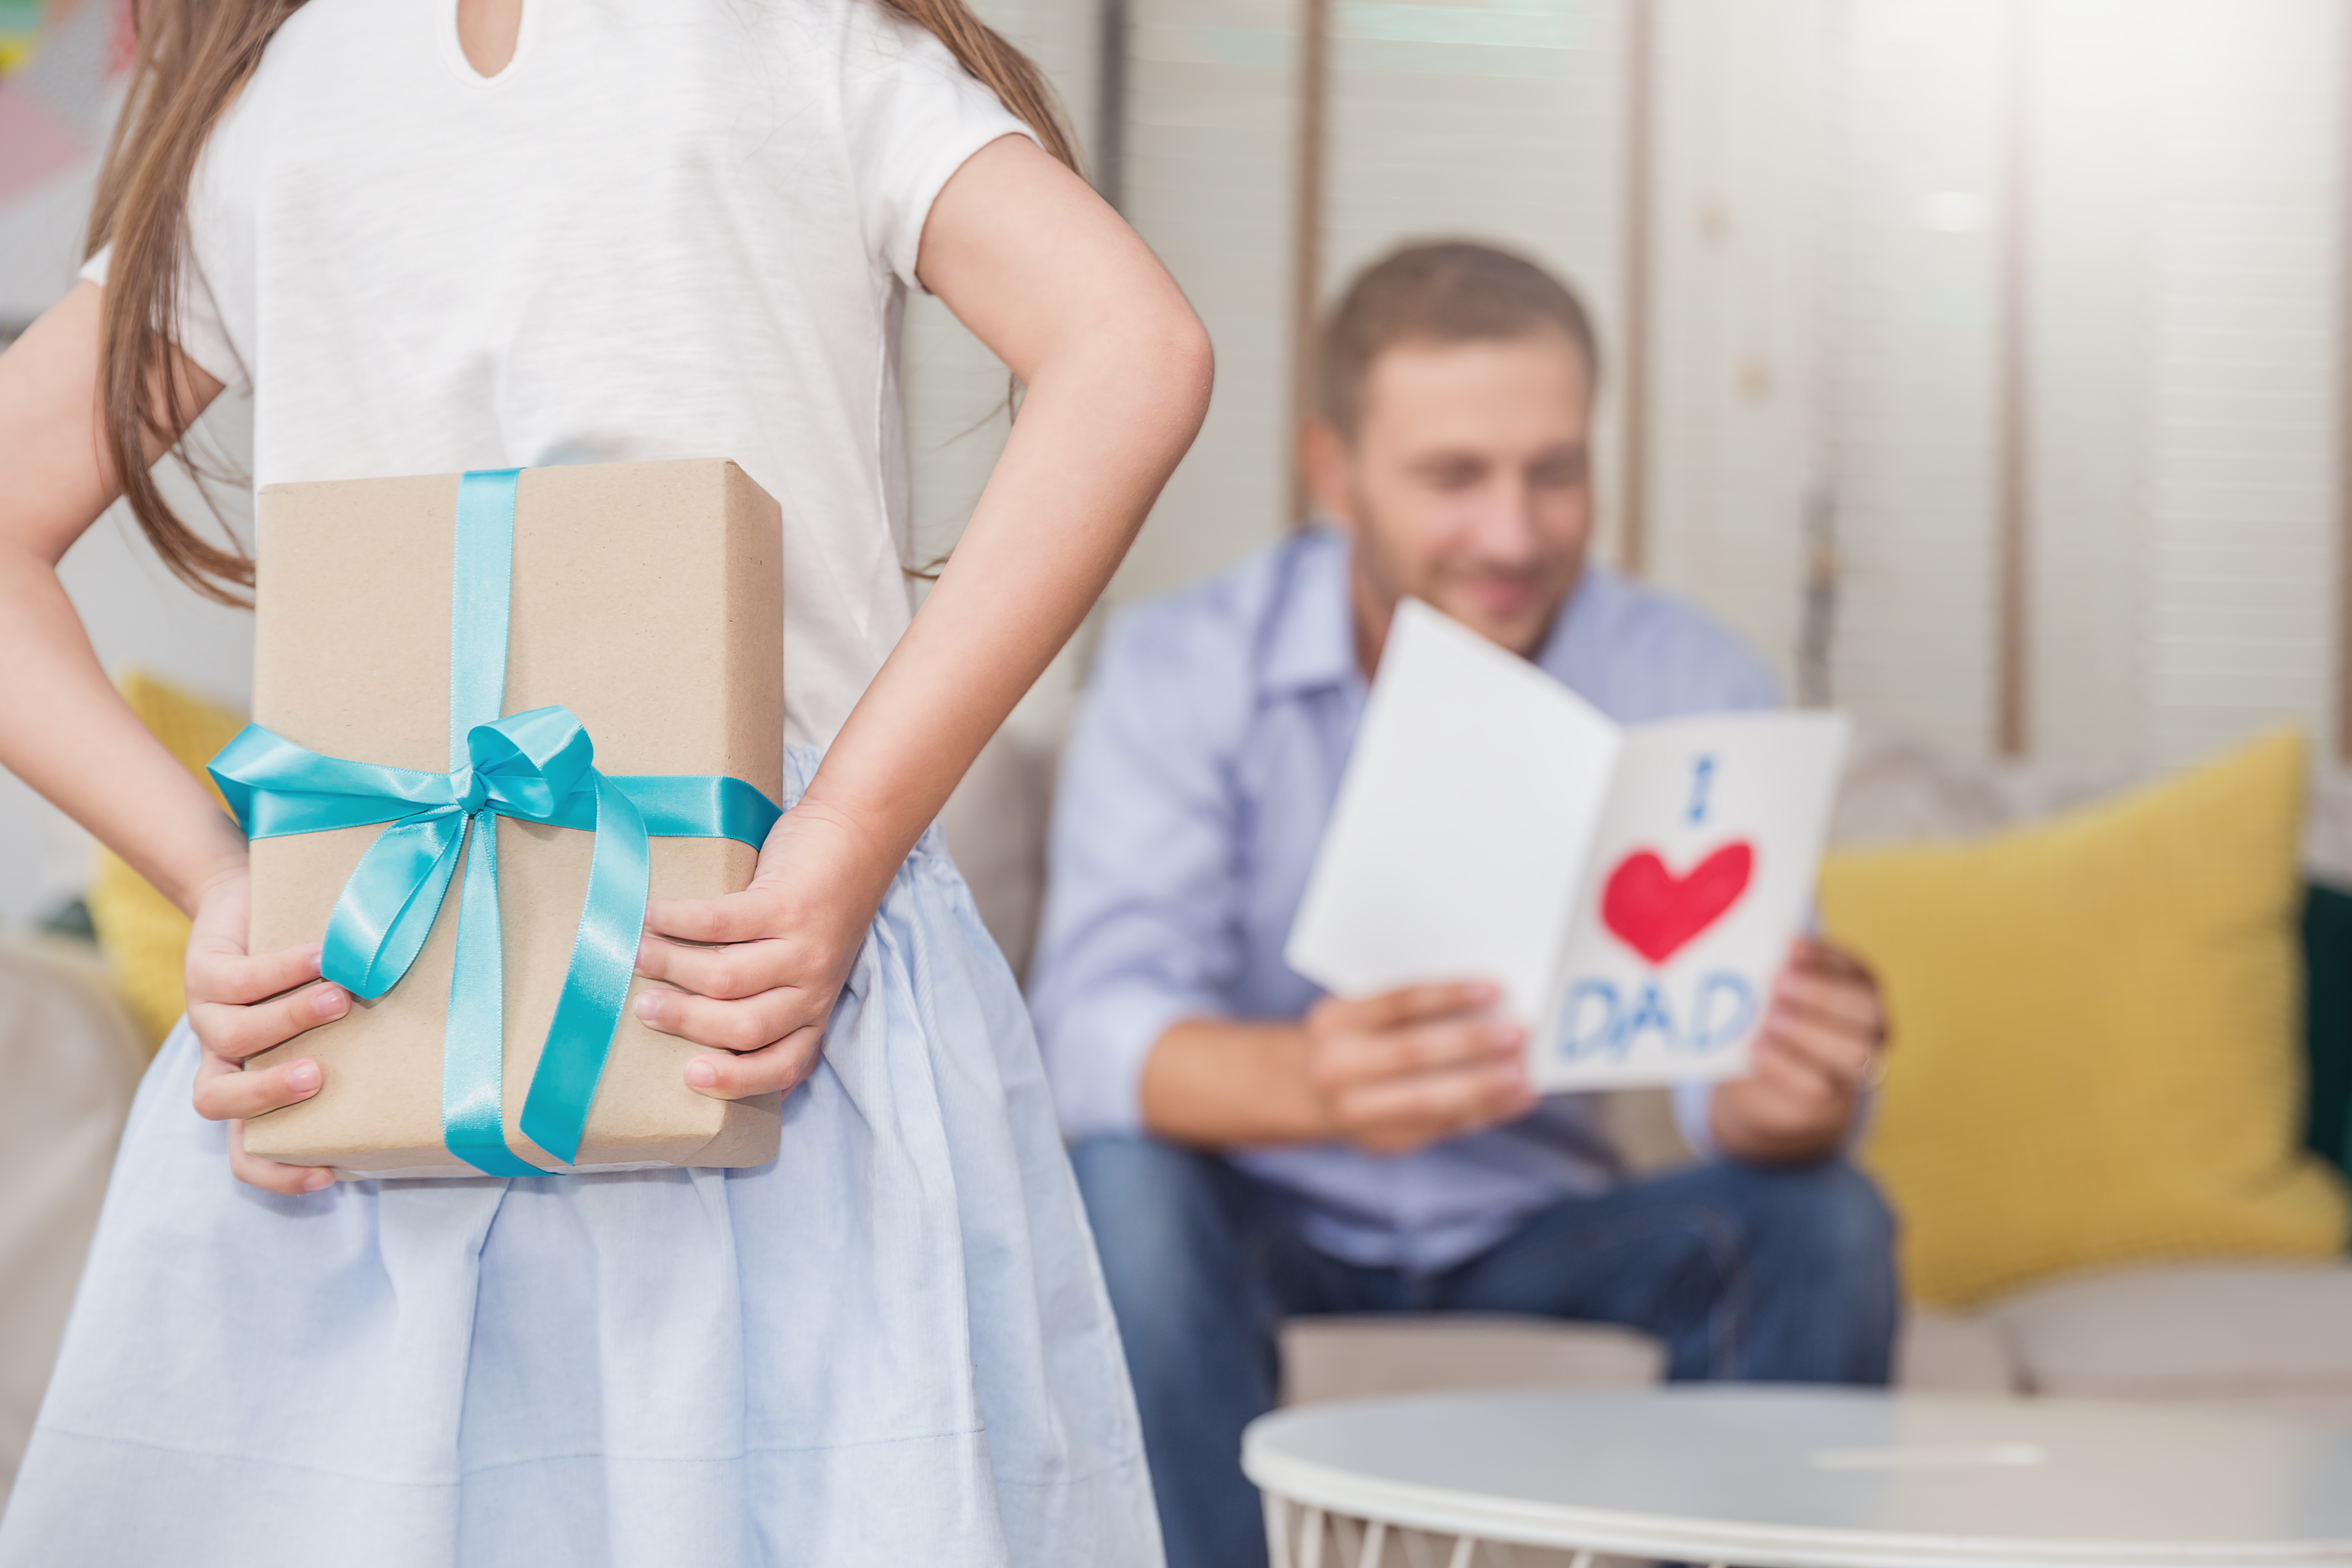 Girl giving gift to dad